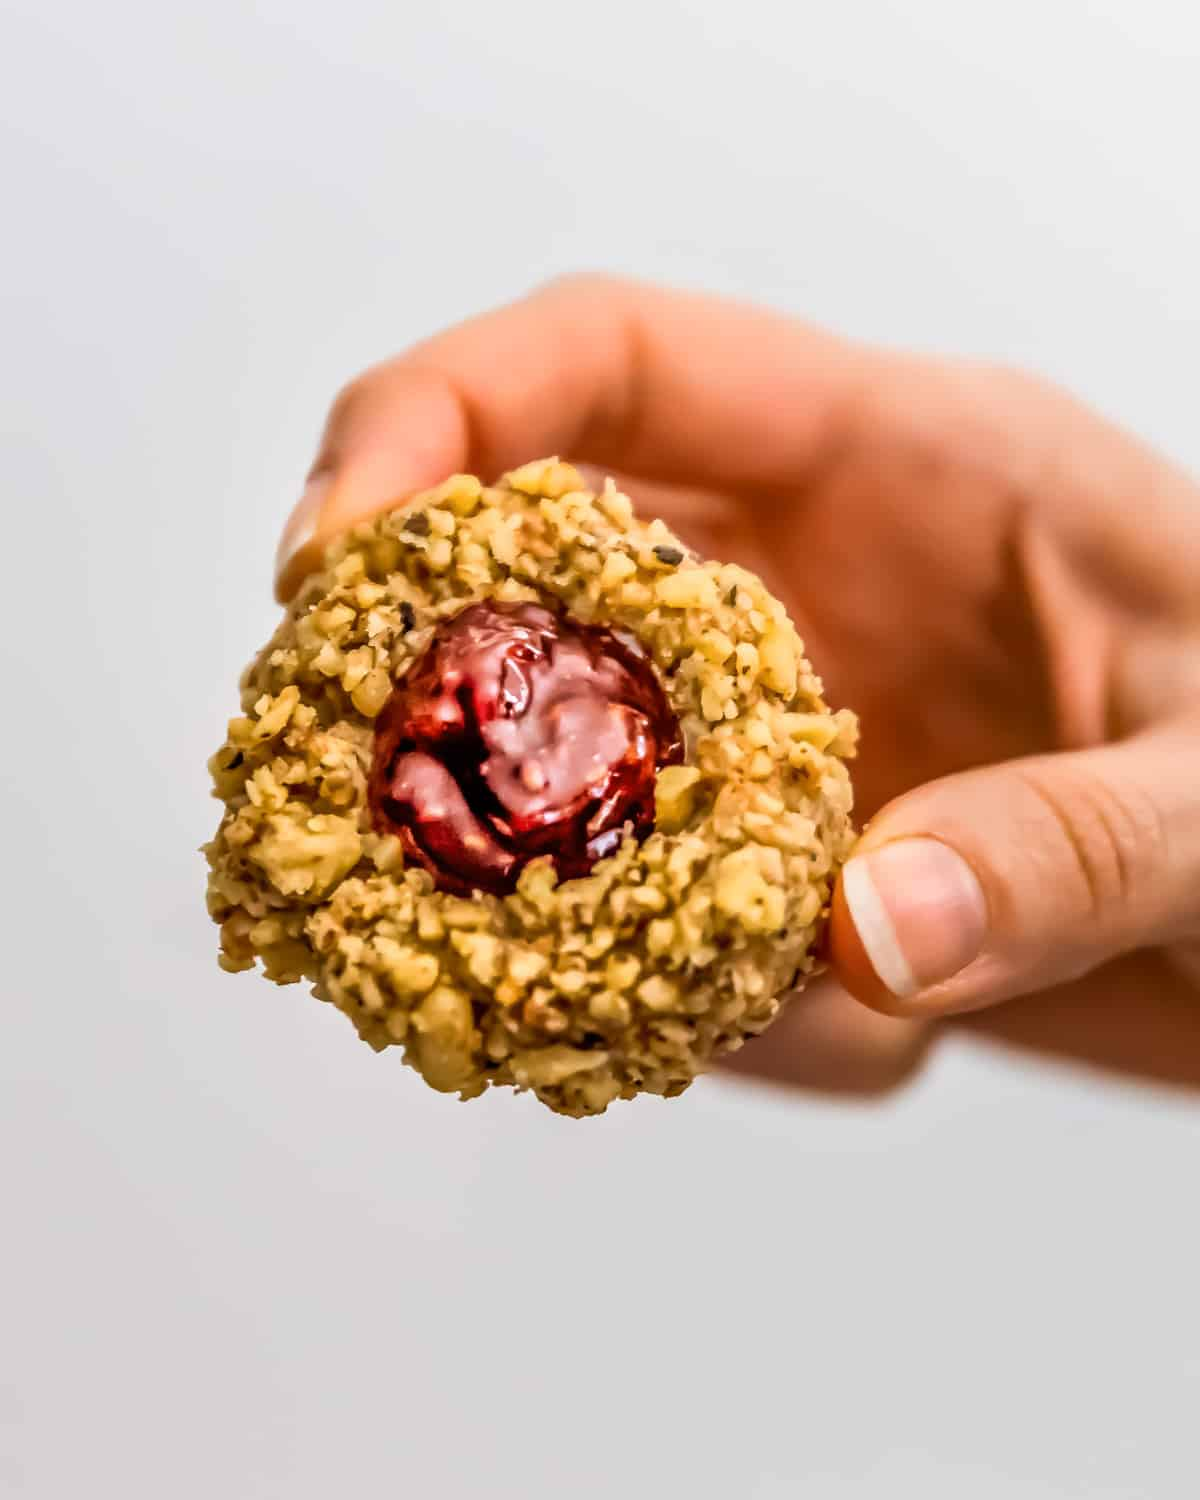 Holding a Vegan Thumbprint Cookie